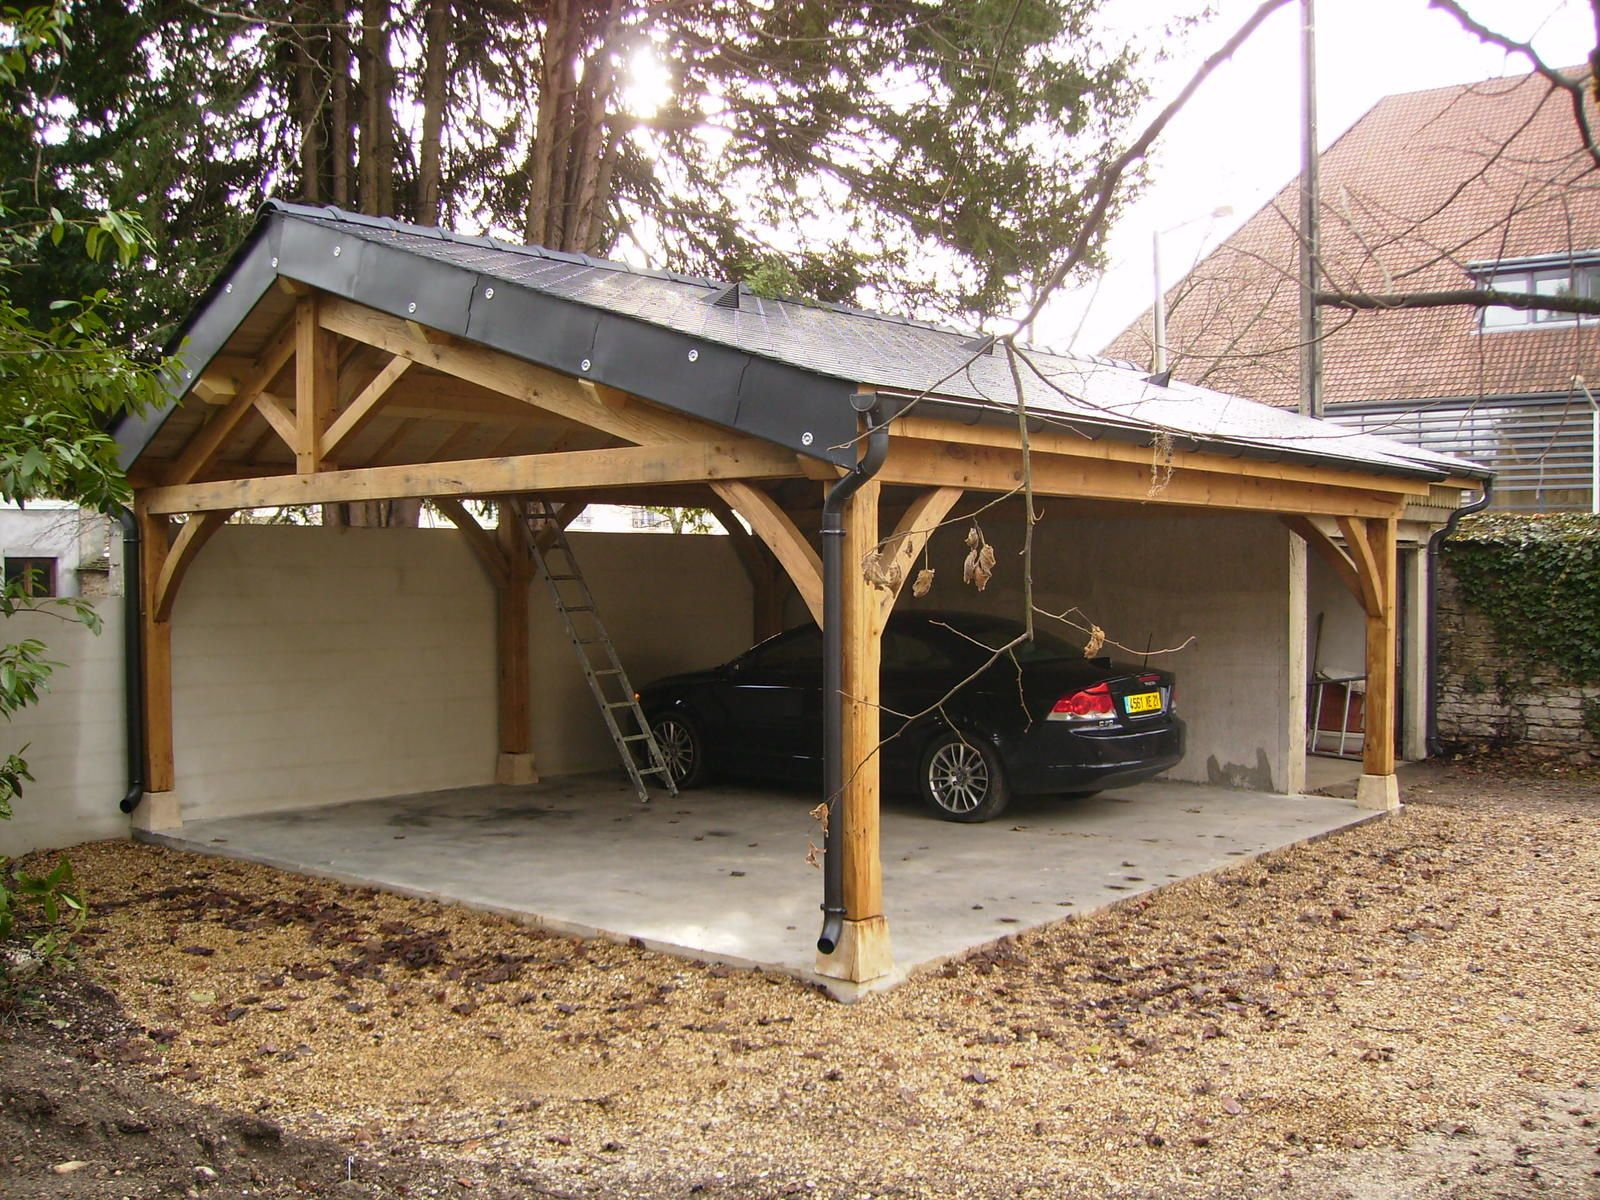 Garage en chene 2 voitures le blog du menuisier de la for Garage pret voiture